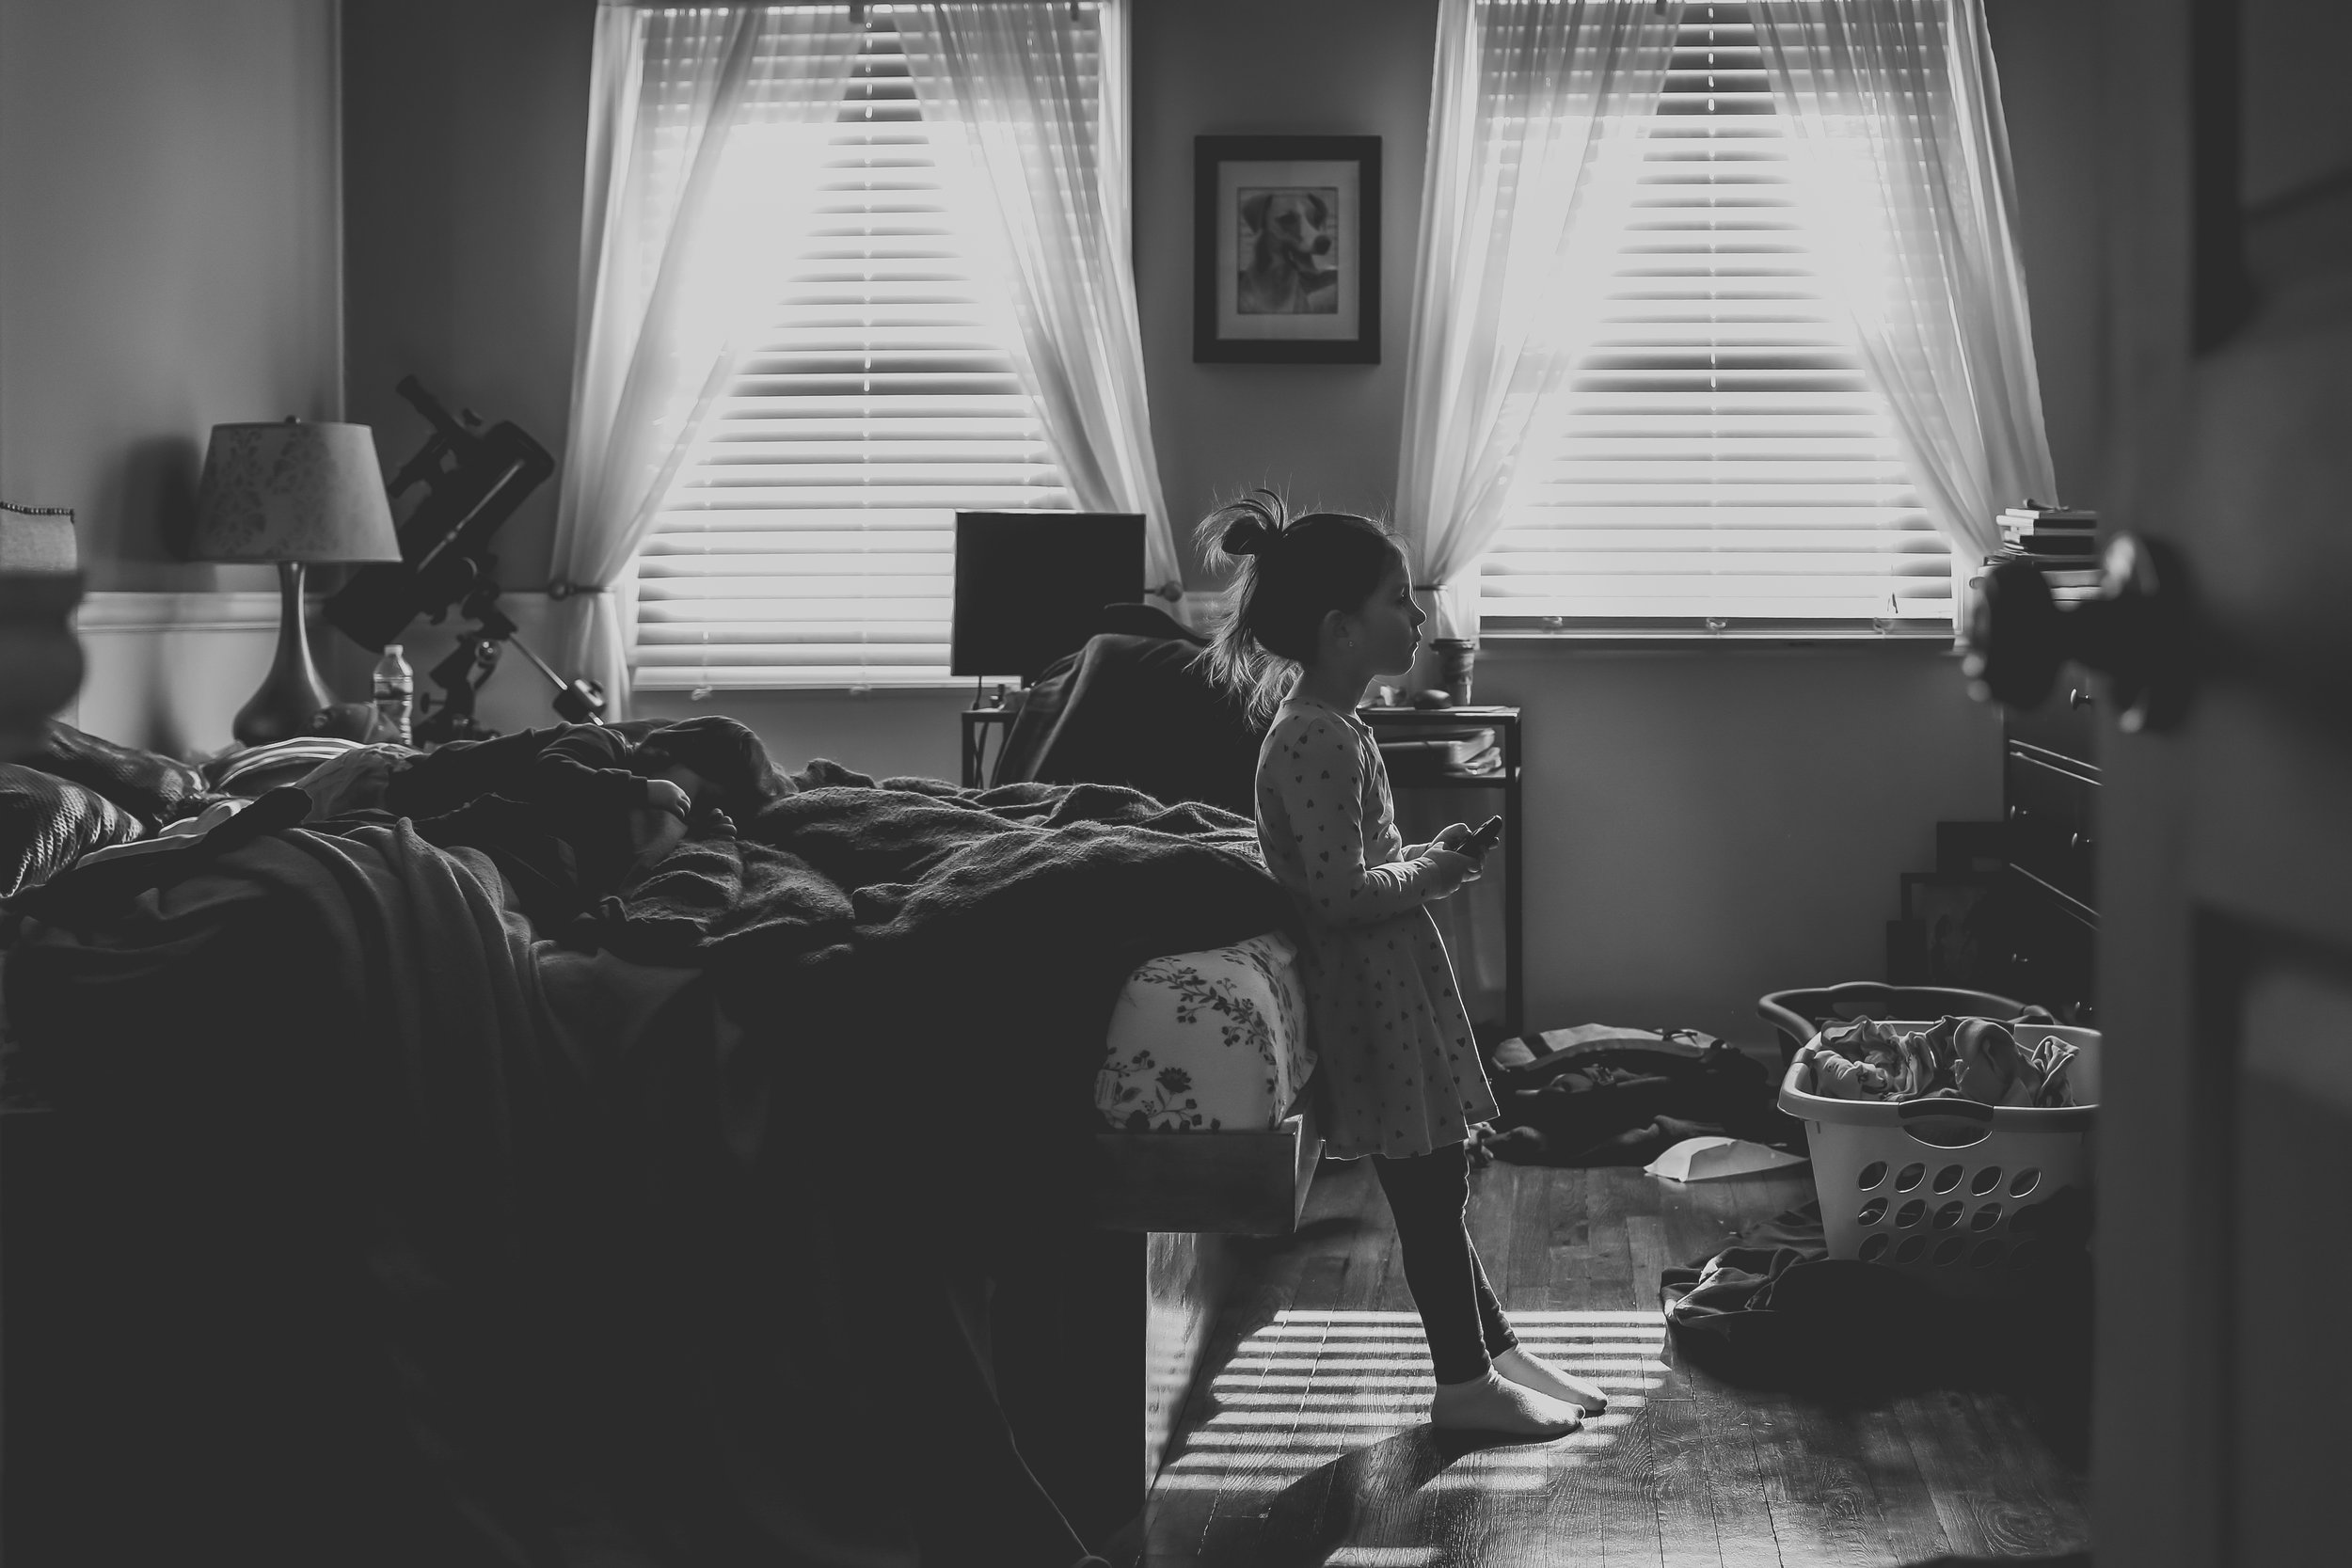 Young girl watching TV in her parents room, at home documentary family photography session by Jen Grima, Lehigh Valley, PA.